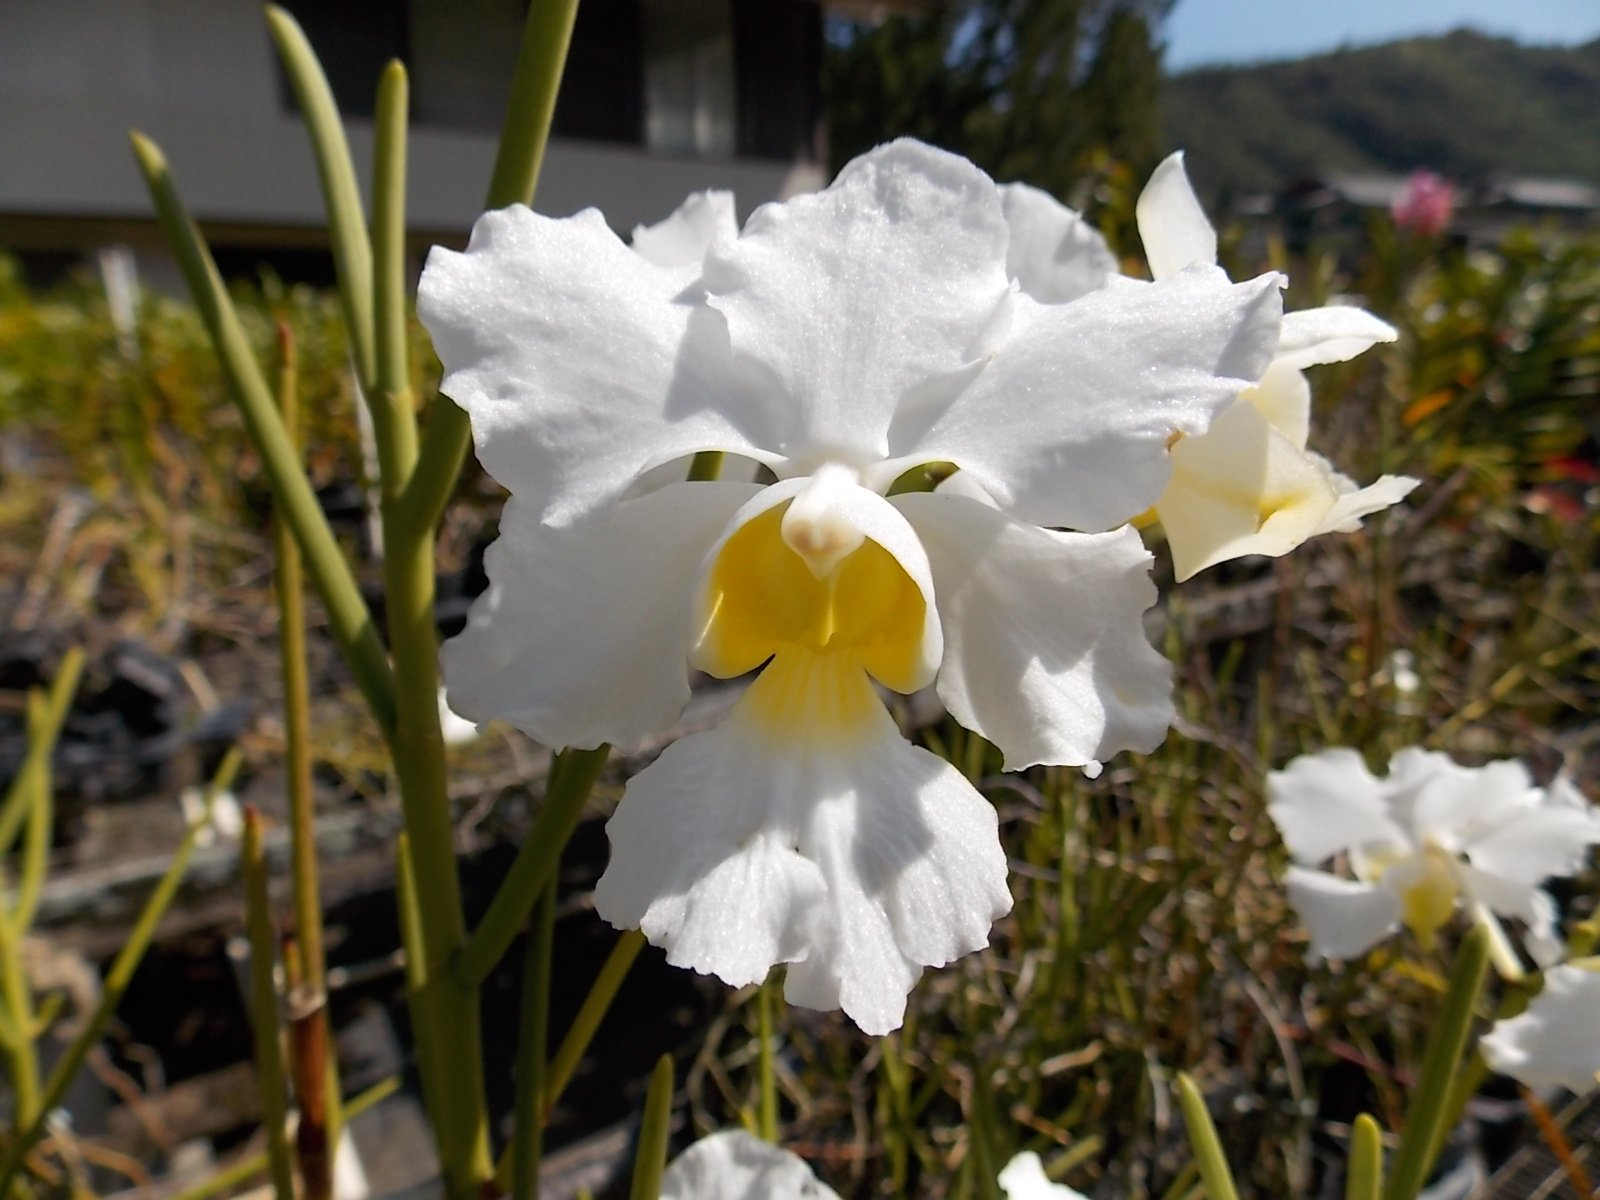 Vanda Miss Joaquim 'Diana' ALBA- Old Timer'! Must See! Limited Hard to find- orchid plant